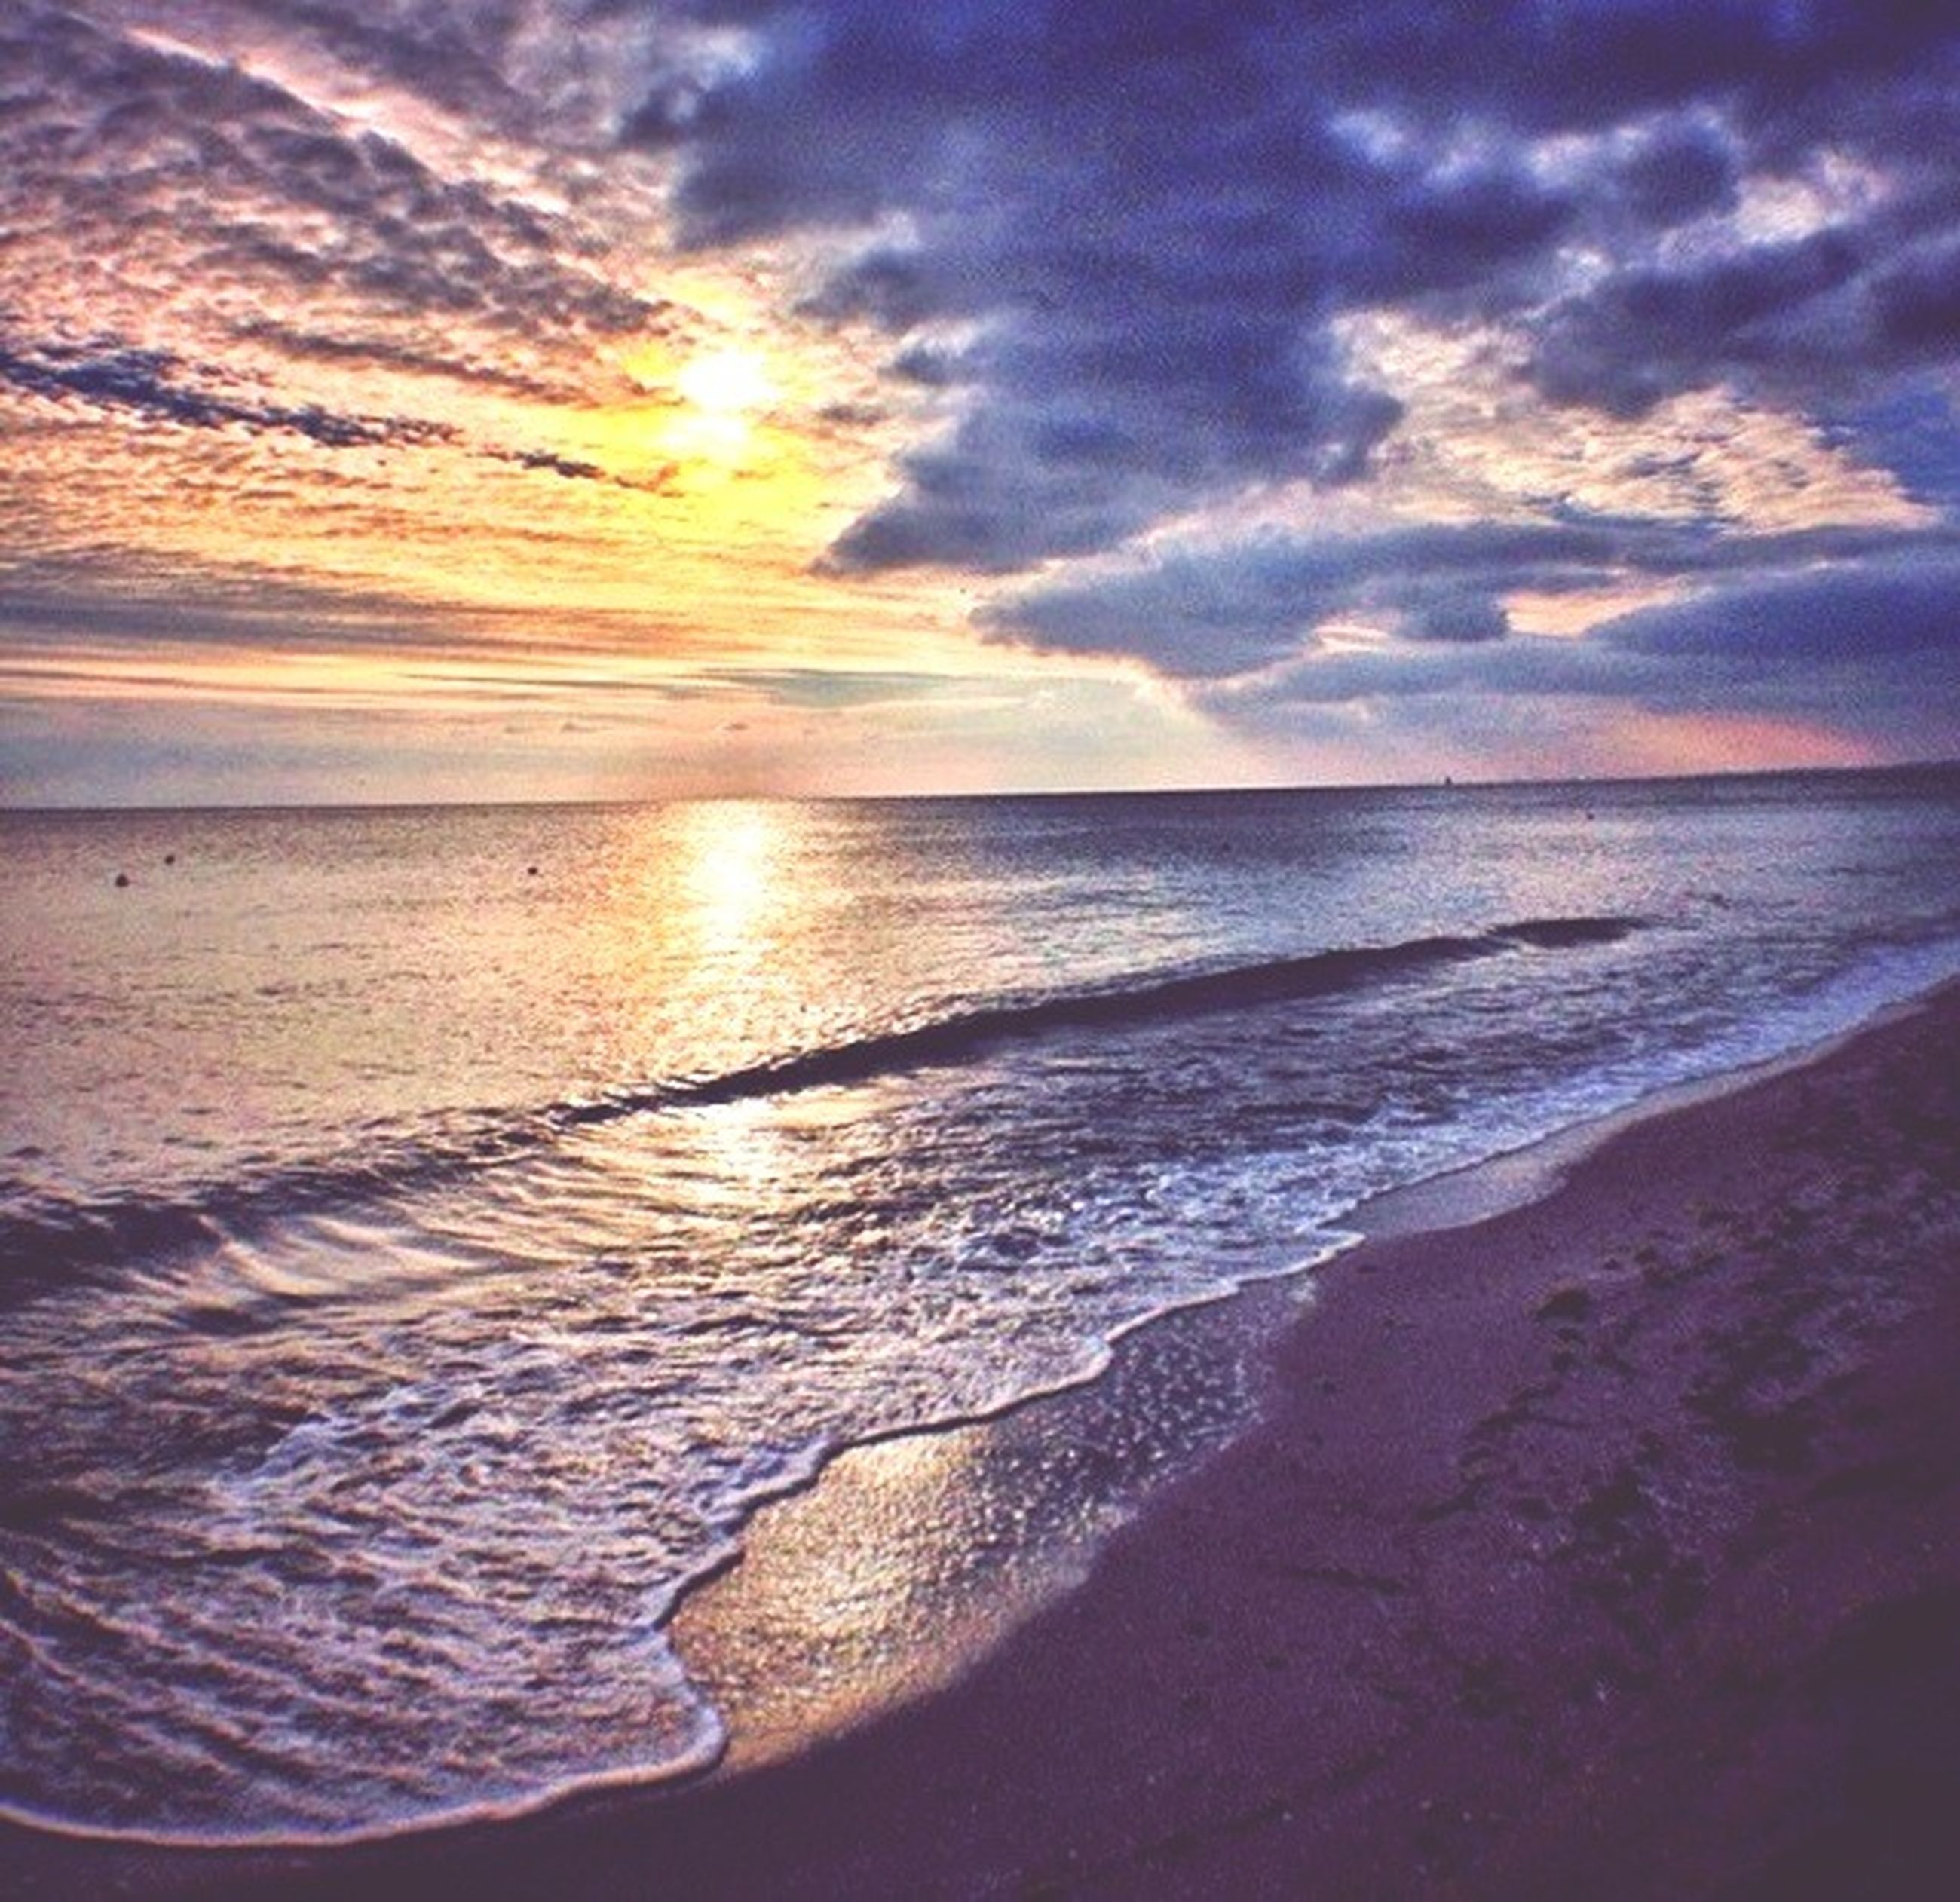 sea, beach, horizon over water, water, scenics, sky, sunset, shore, beauty in nature, tranquil scene, tranquility, cloud - sky, nature, wave, sun, idyllic, sand, reflection, surf, cloudy